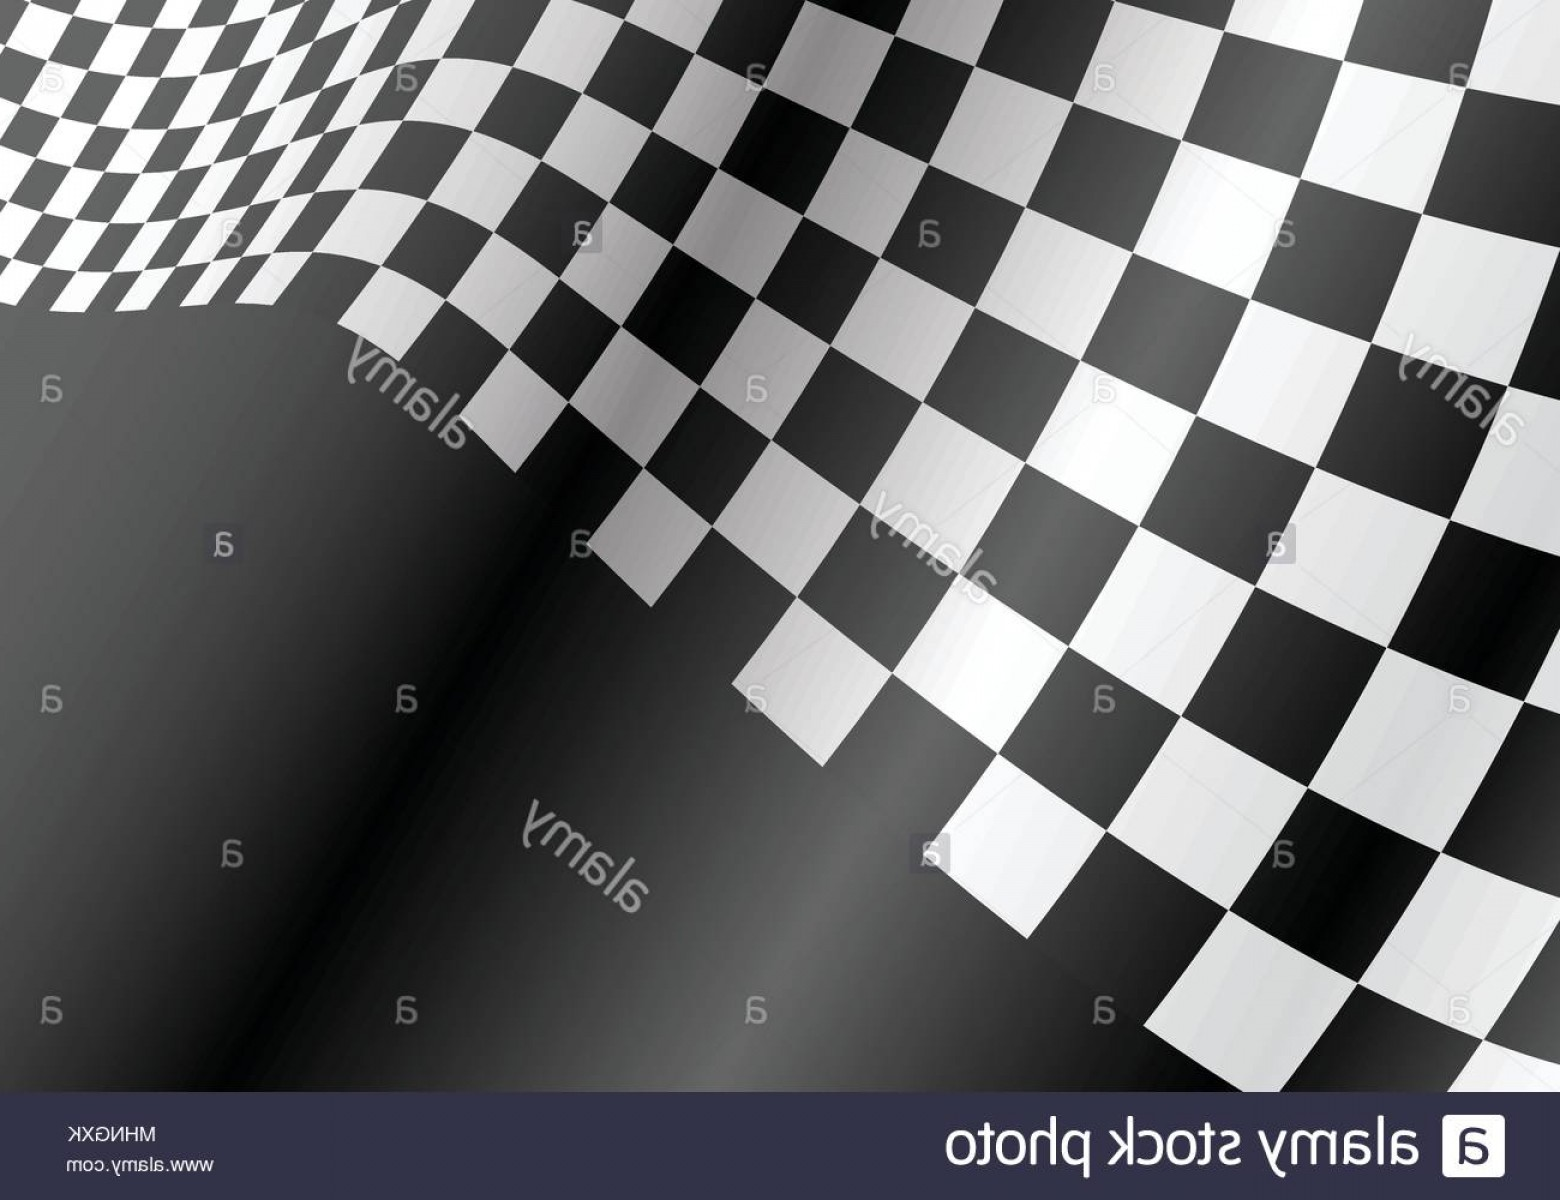 Checkered Flag Background Vector: Checkered Flag Wave On Gray Design Race Championship Background Vector Illustration Image